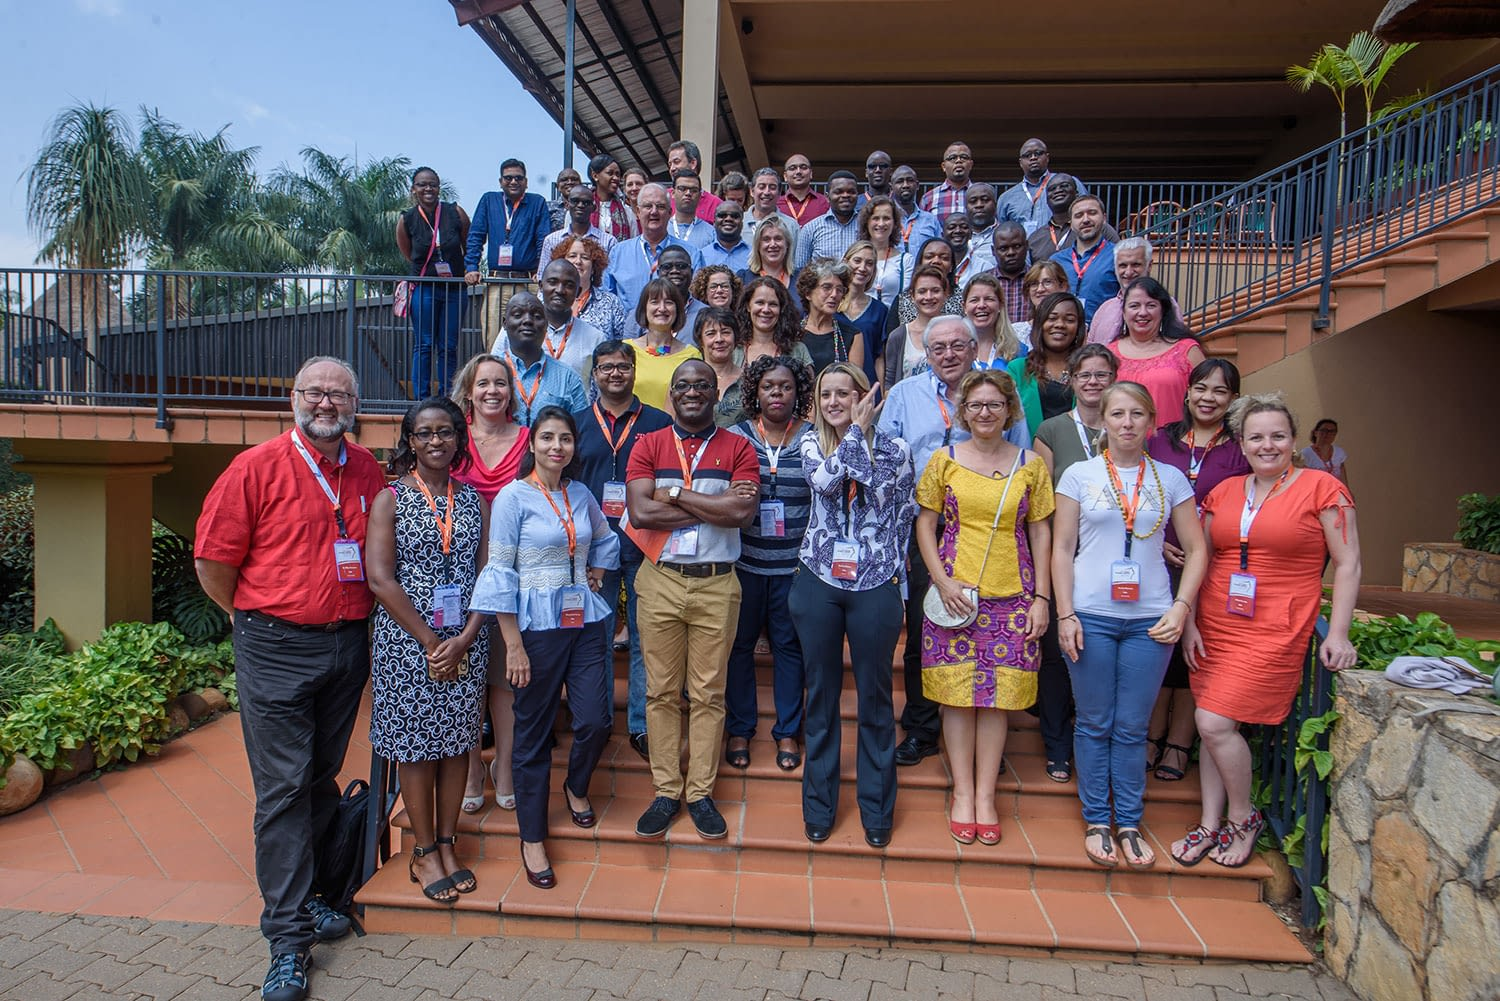 Participants, drawn from the various disease areas, attending the clinical trial training pose for a group photo.